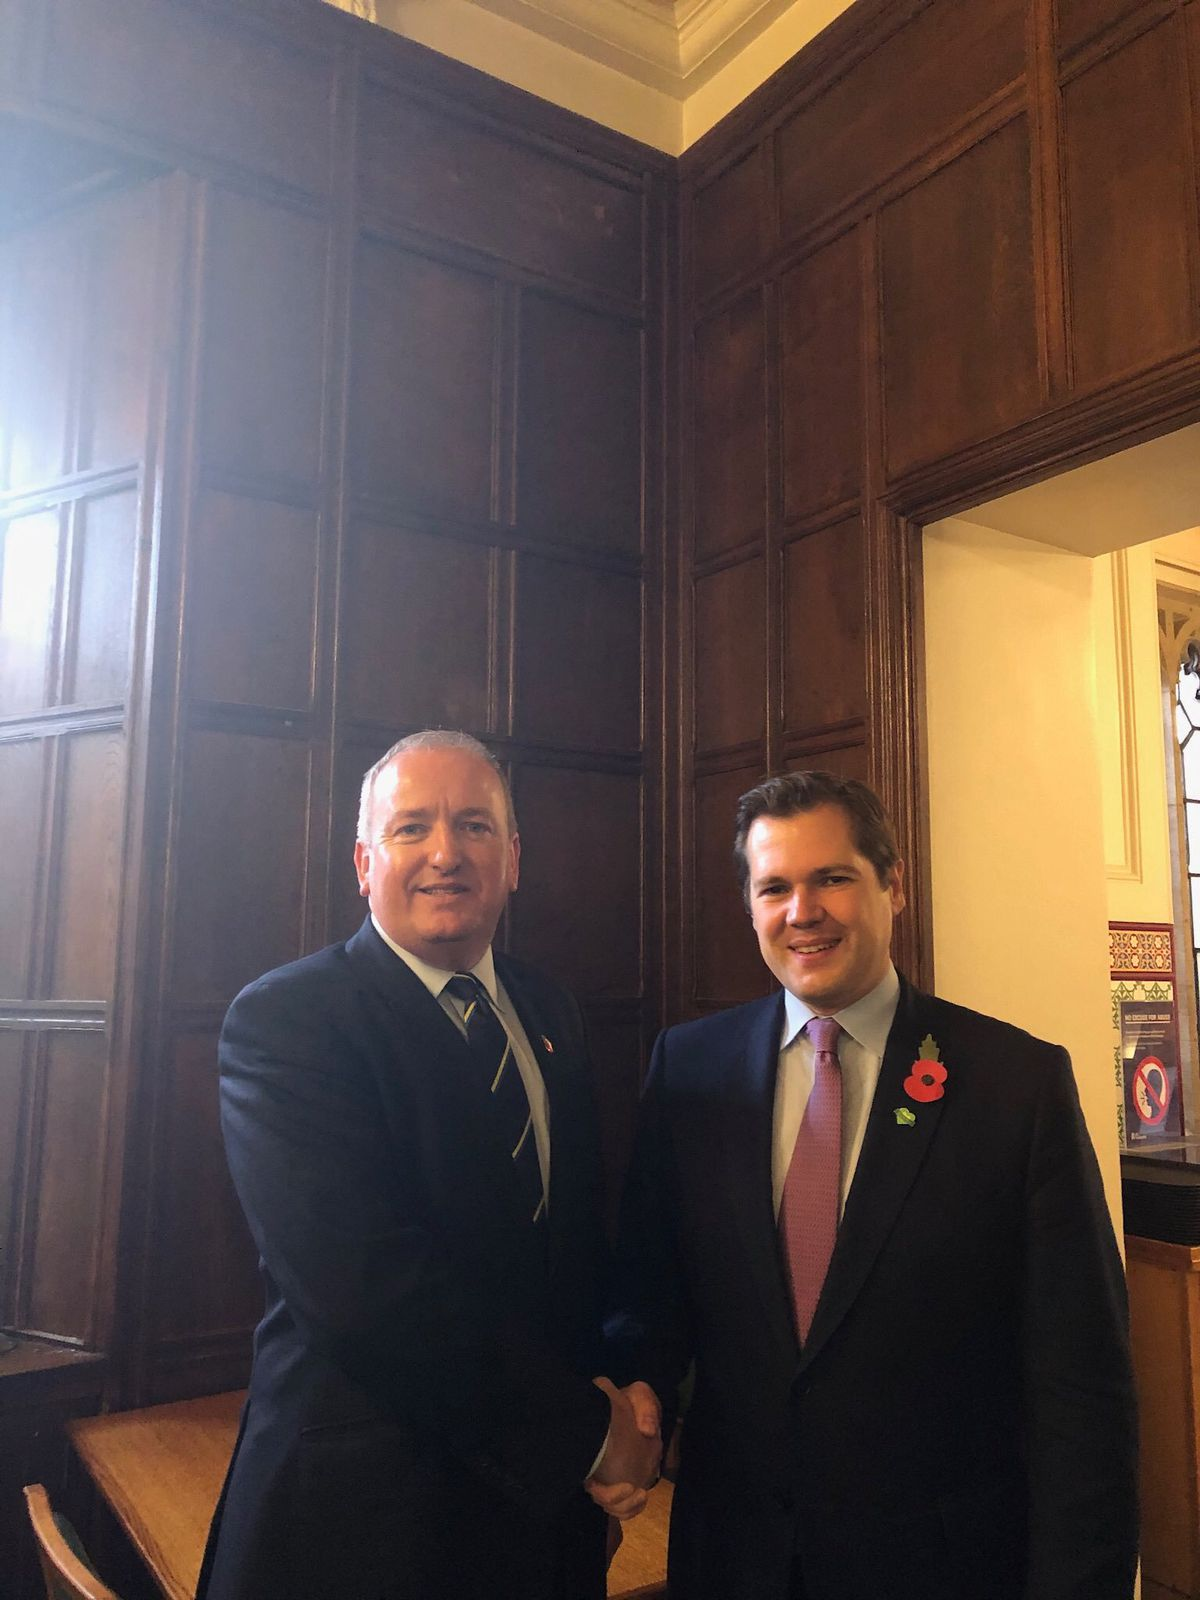 Mark Pritchard with Housing, Communities and Local Government Secretary Robert Jenrick